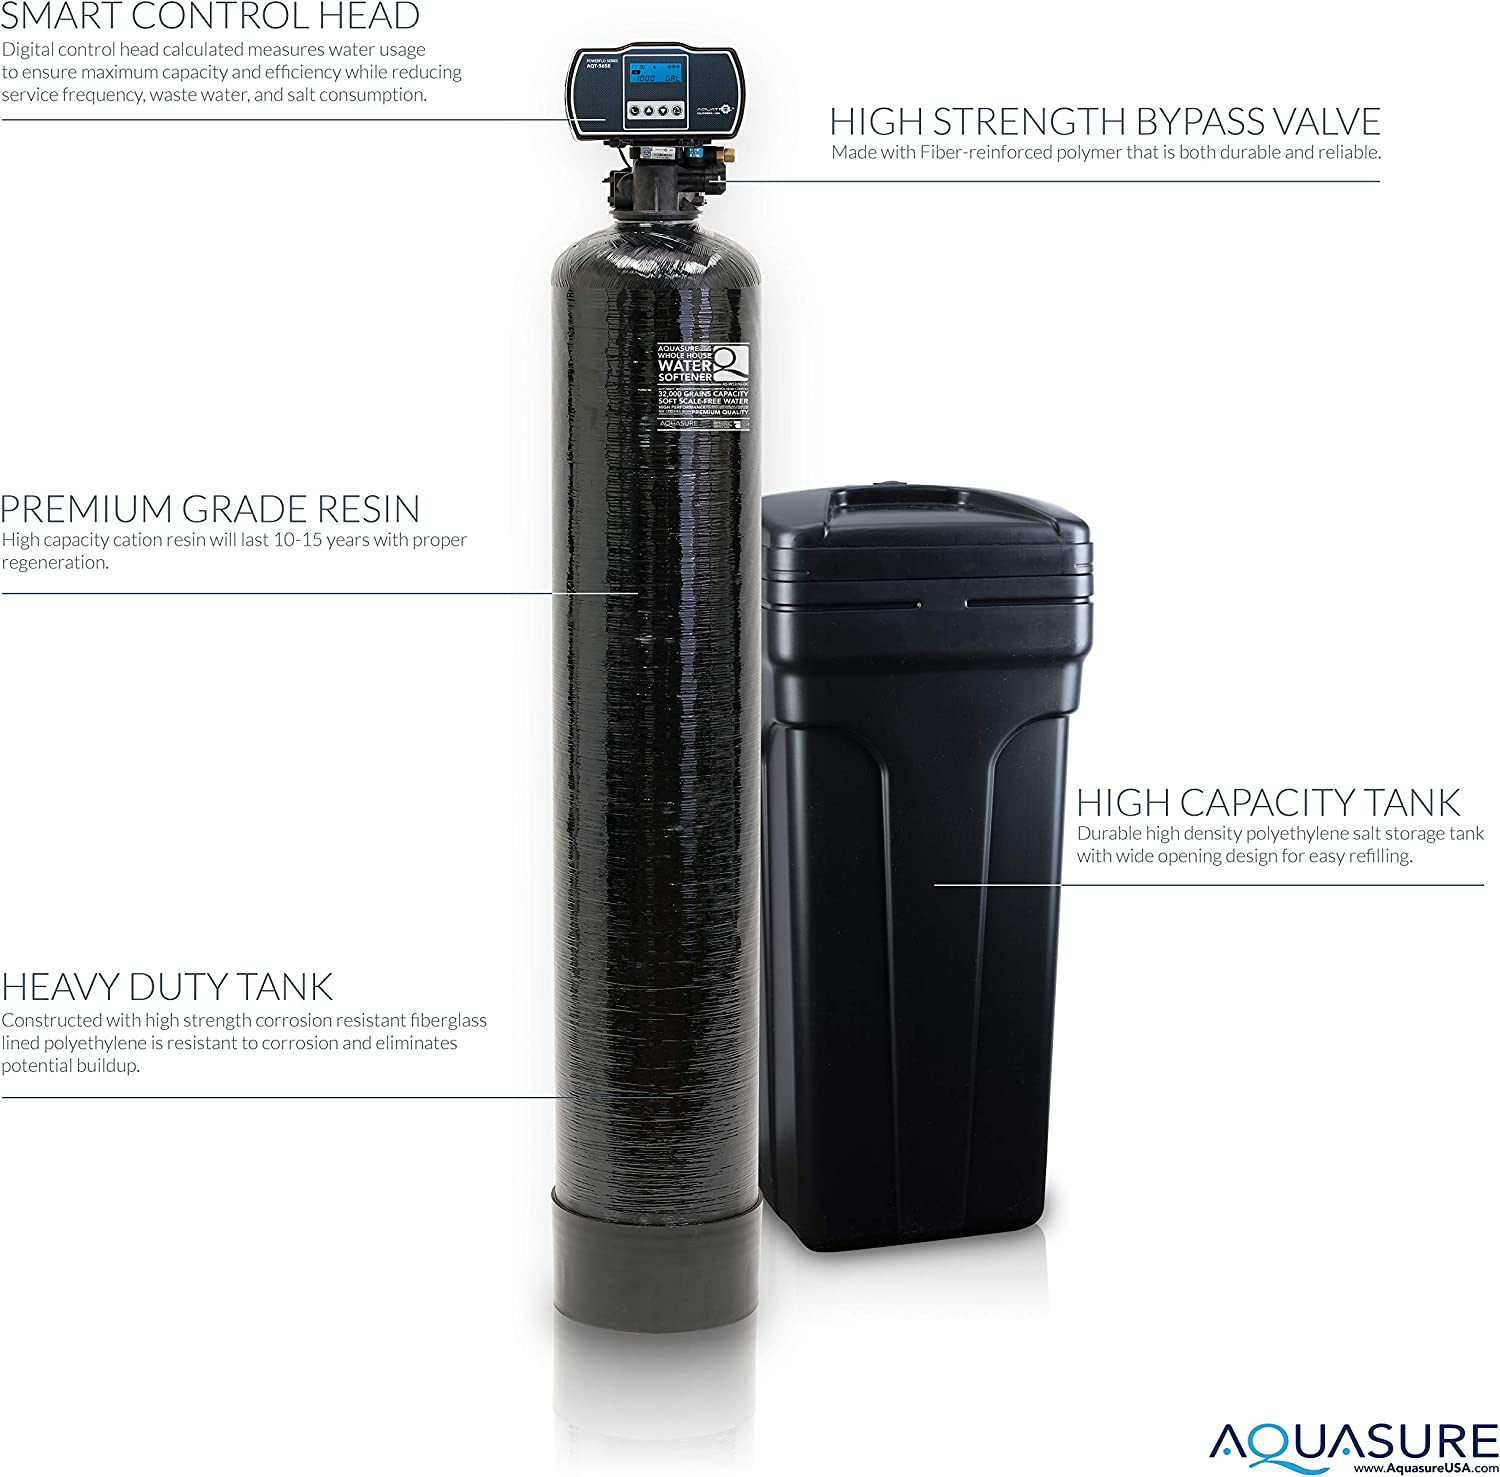 Aquasure Harmony Series Water Softener